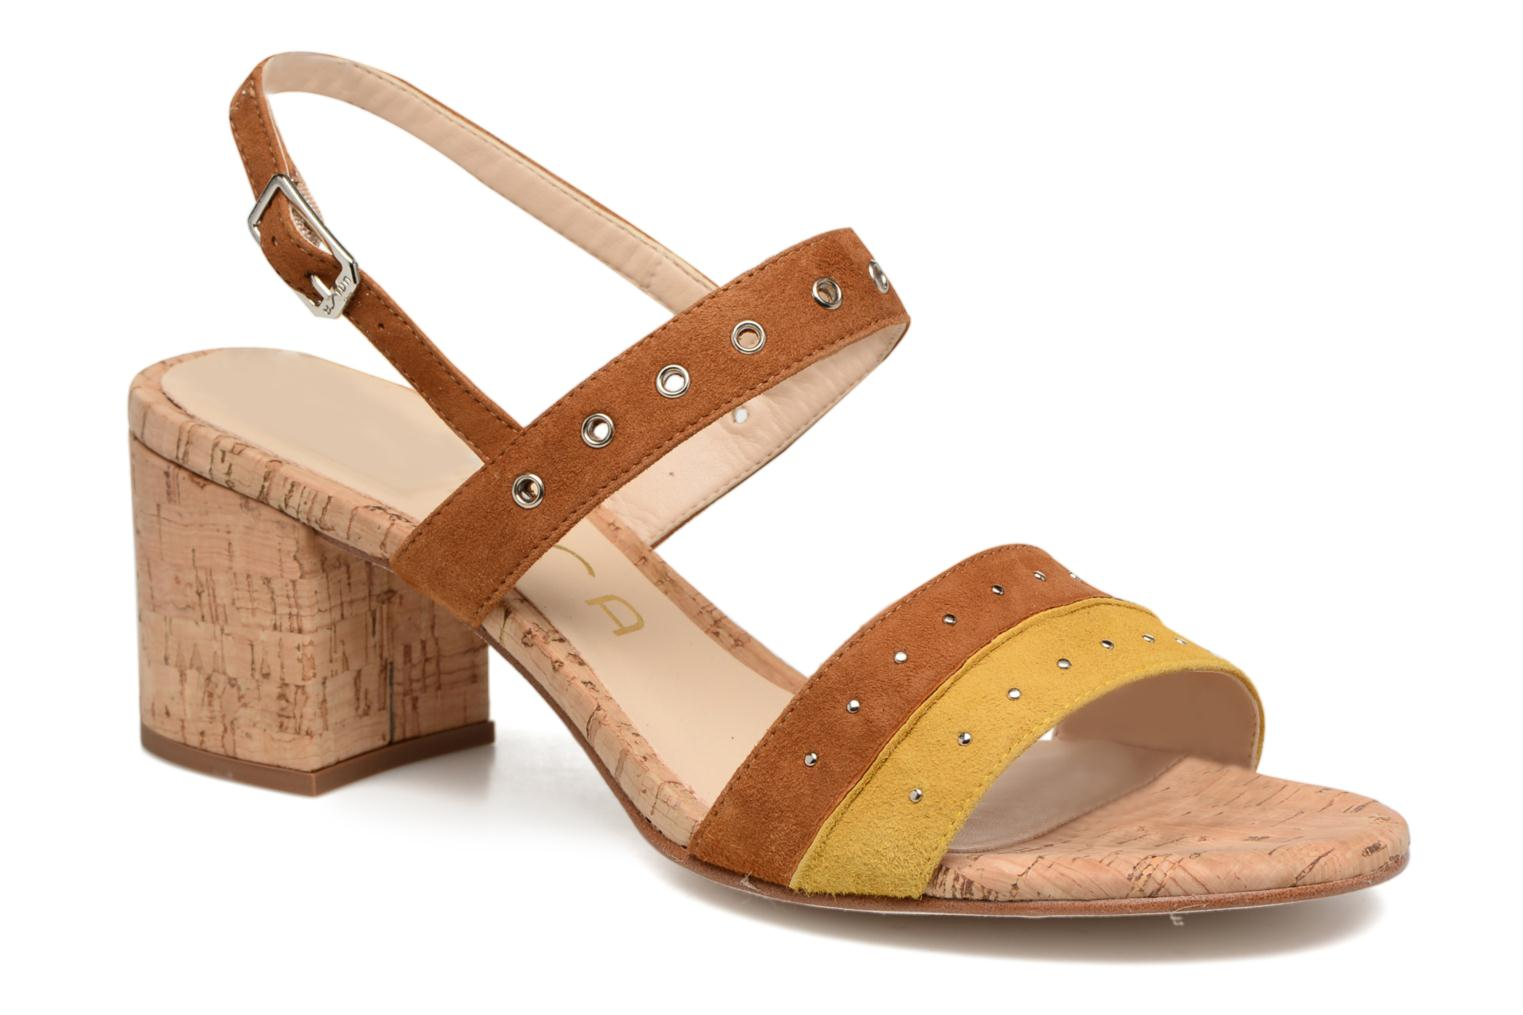 Marques Chaussure femme Unisa femme Osea Kid Suede Couro/ Ocra